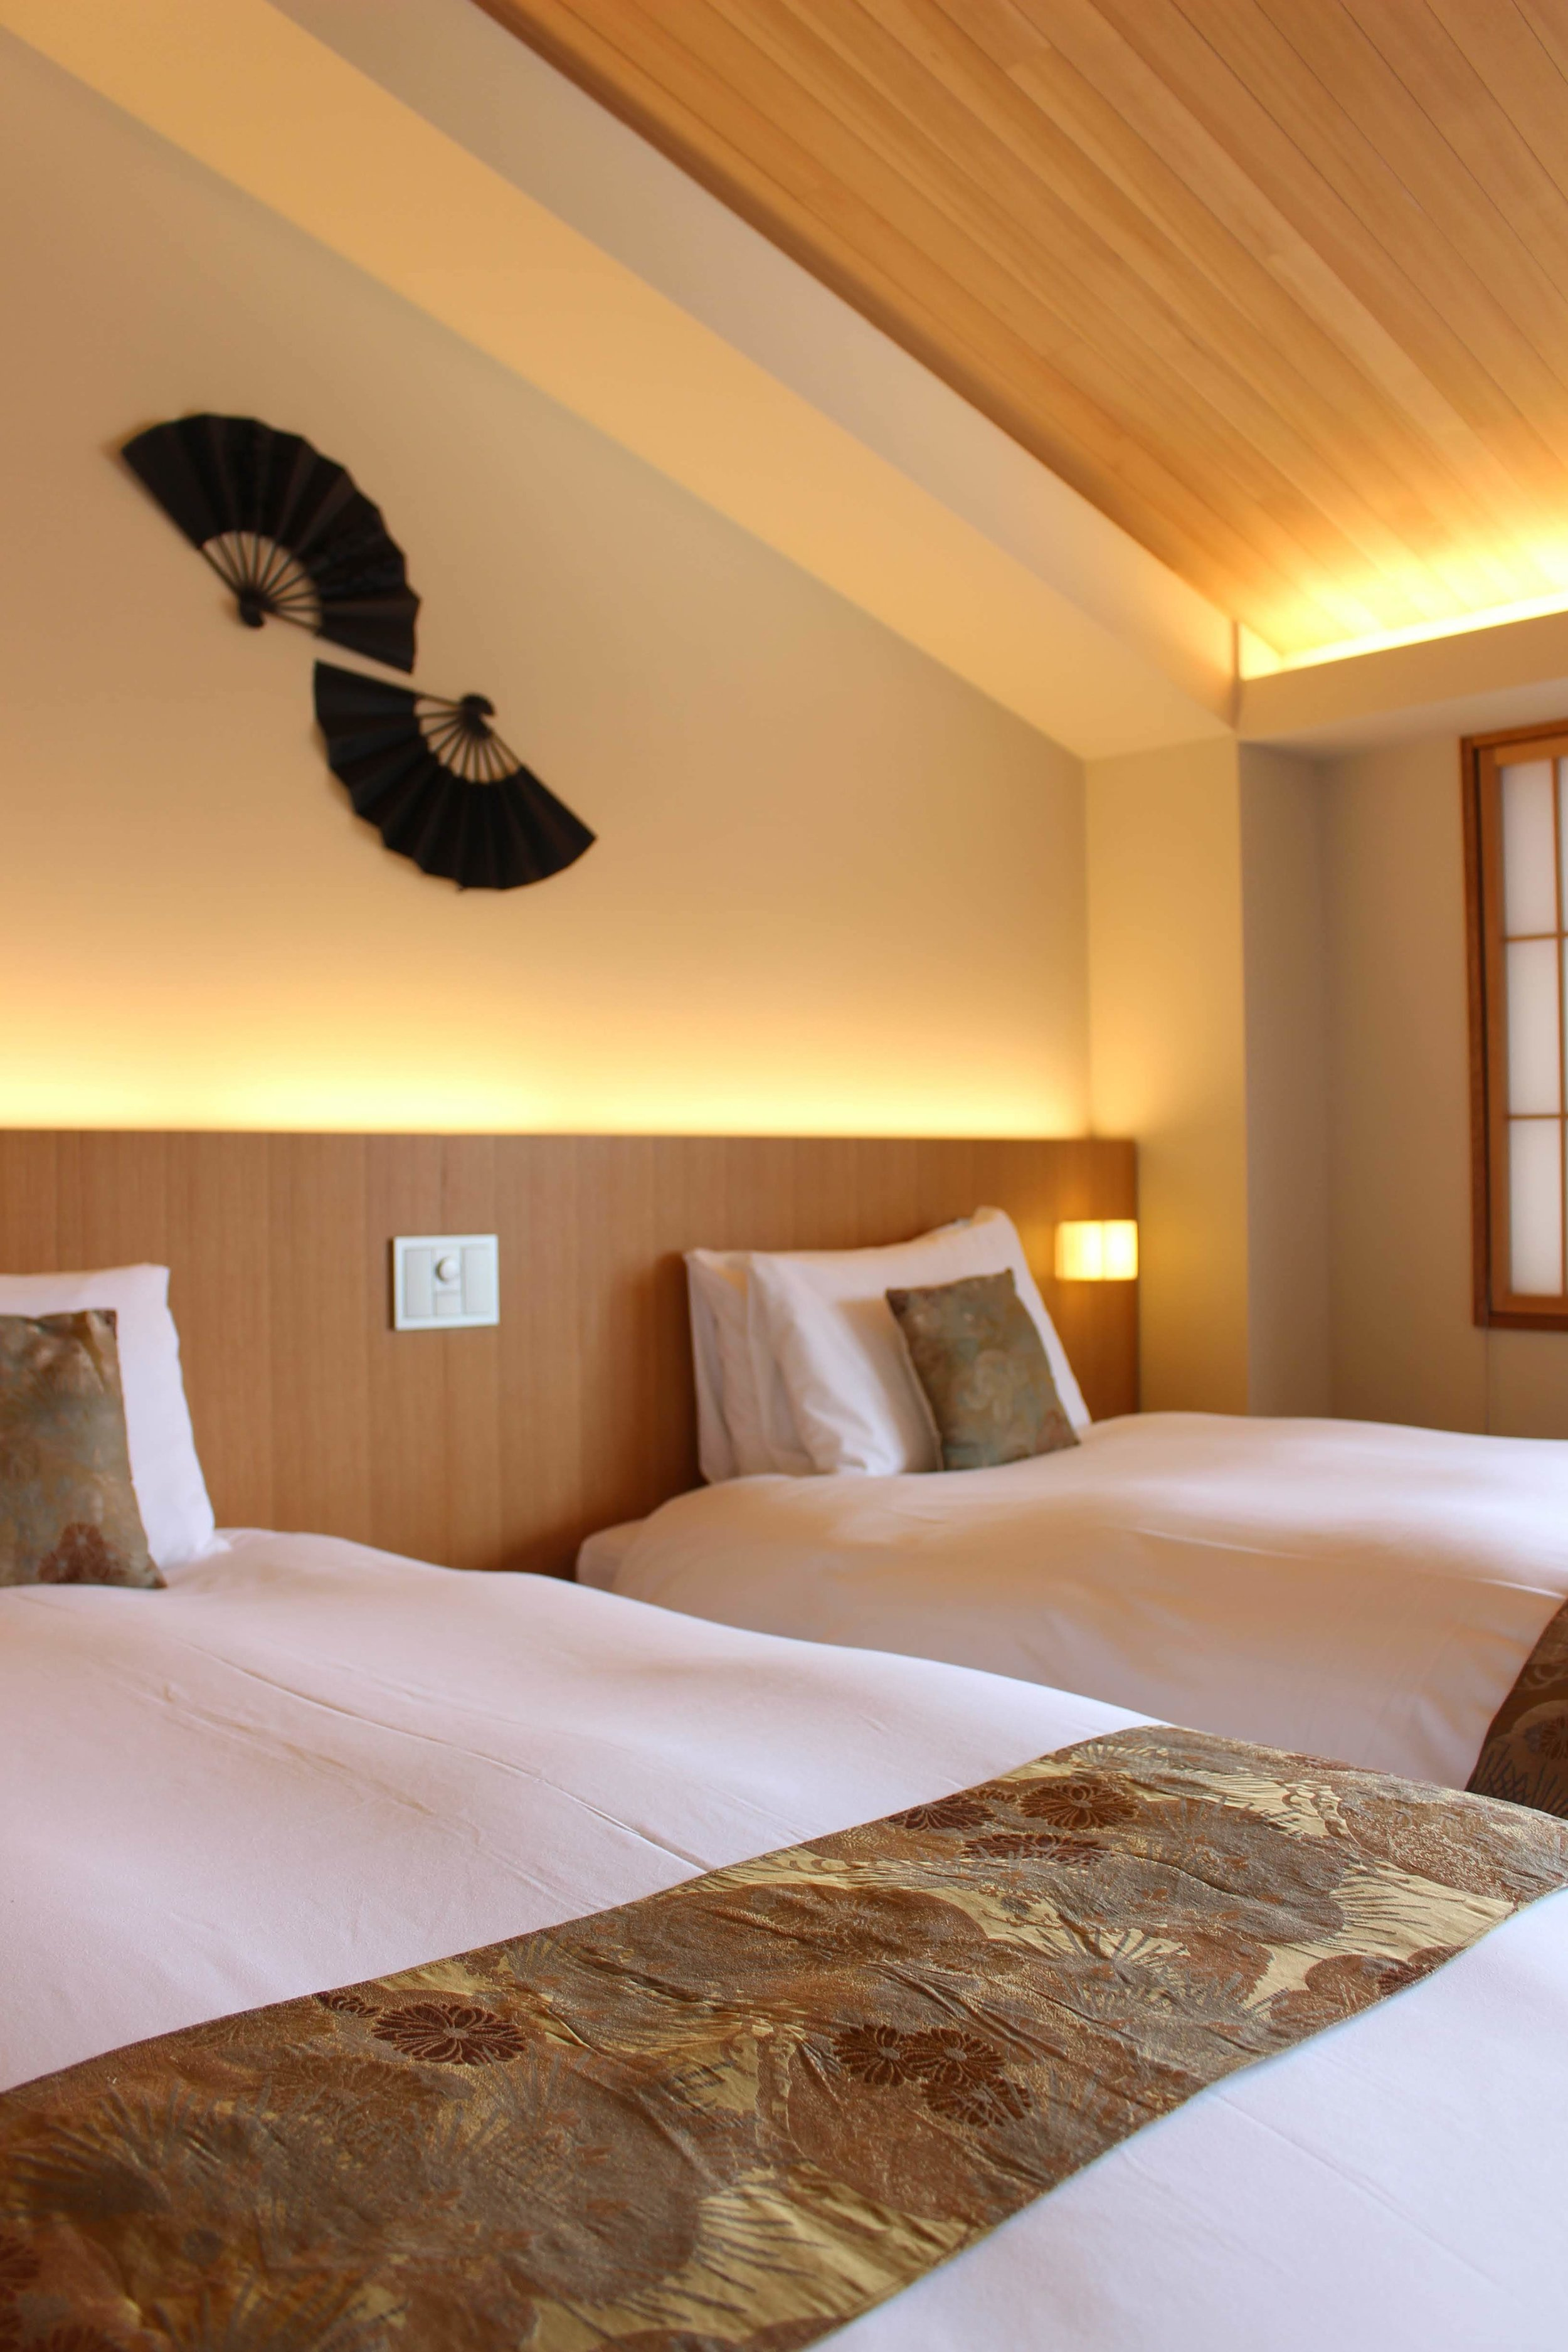 Hotel Ethnography | Kyoto, Japan - Coming Soon